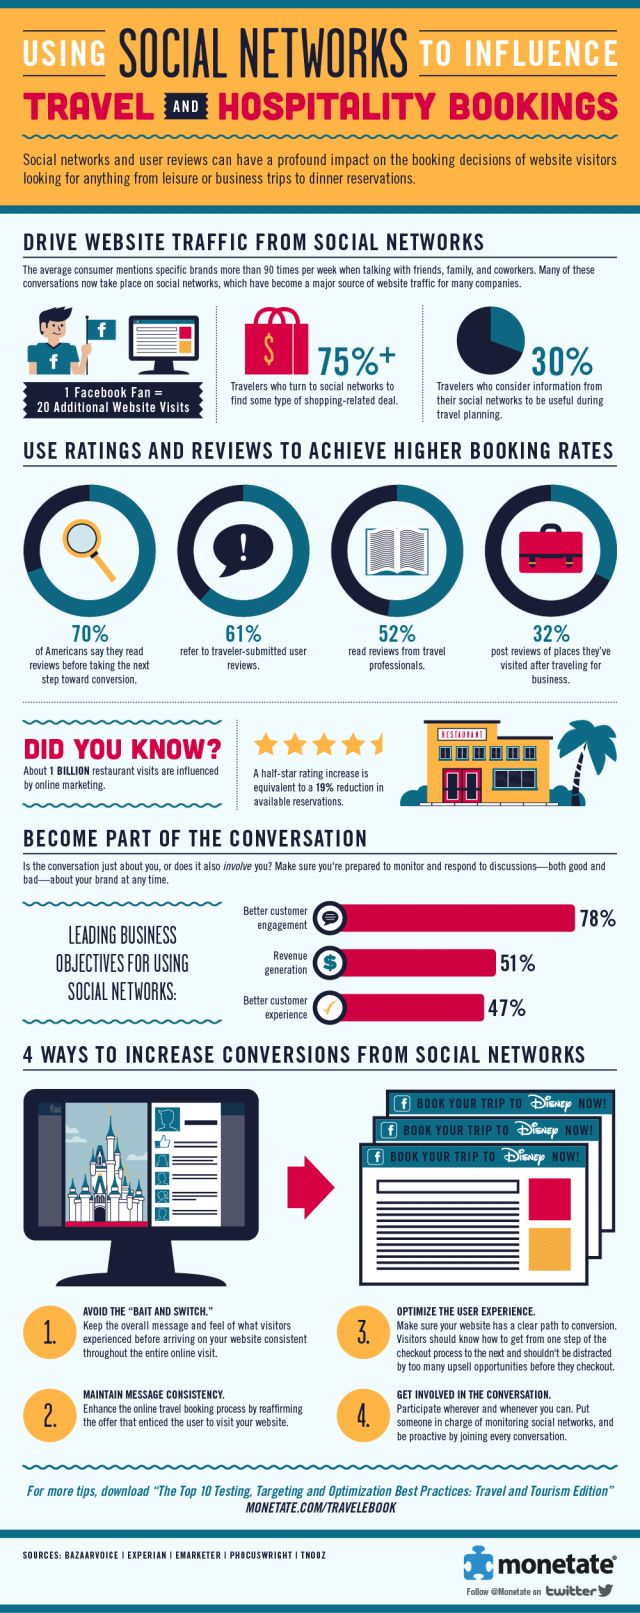 Social Media Marketing and the Travel and Hospitality Industry / @ire_rete